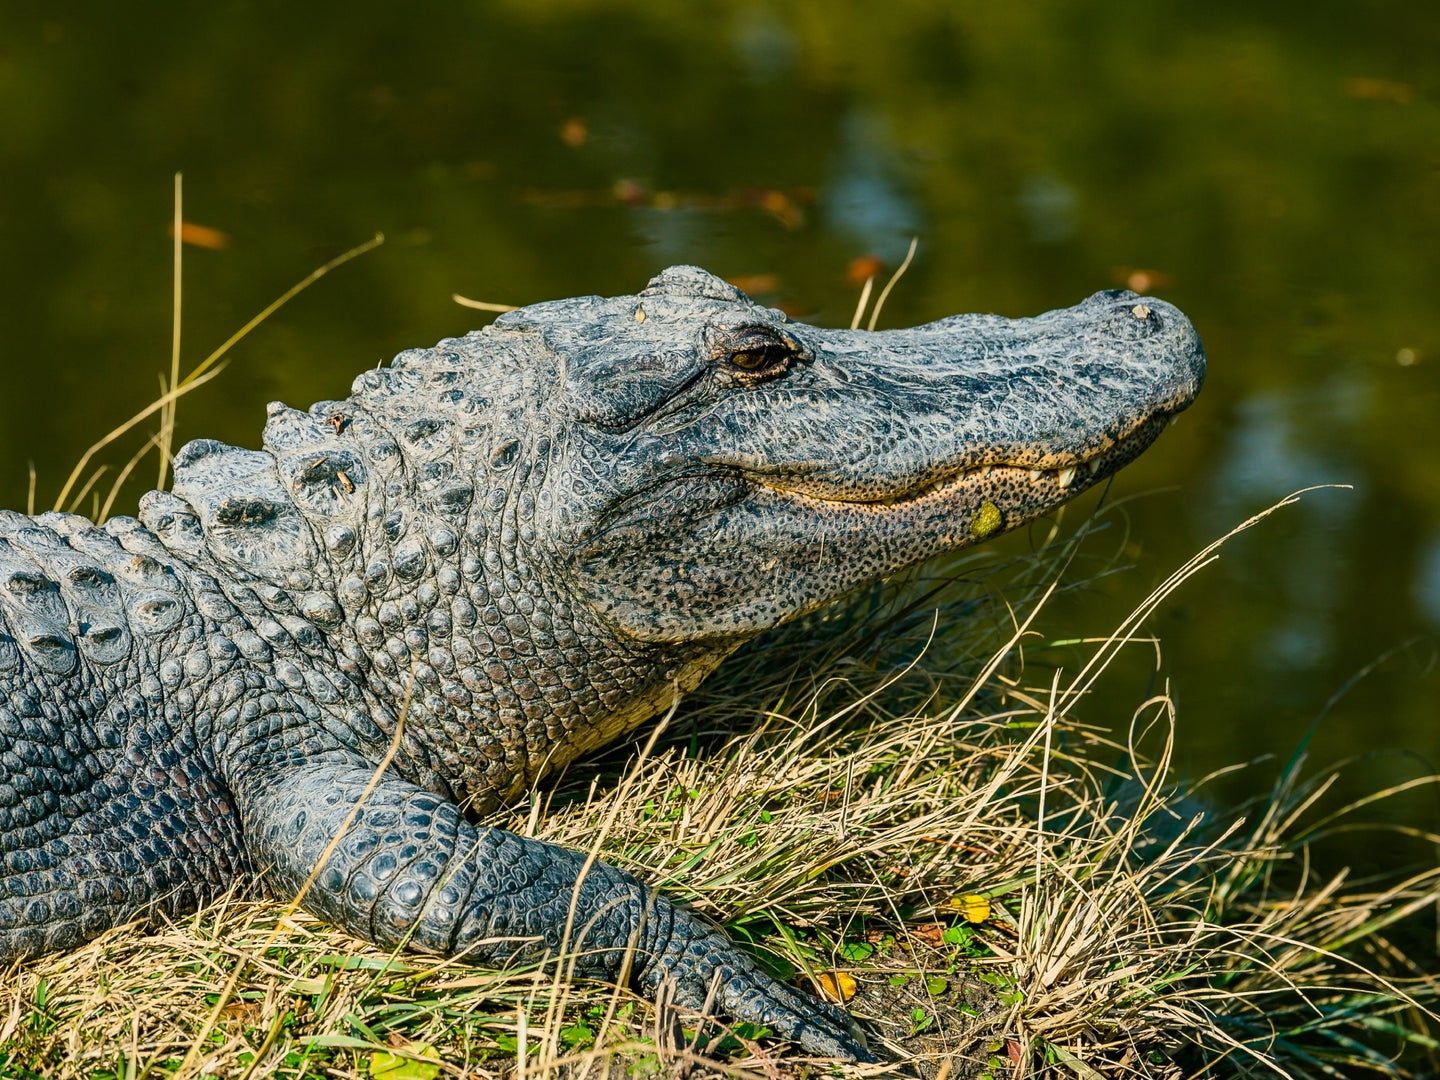 An alligator resting on a grassy bank near a body of water.